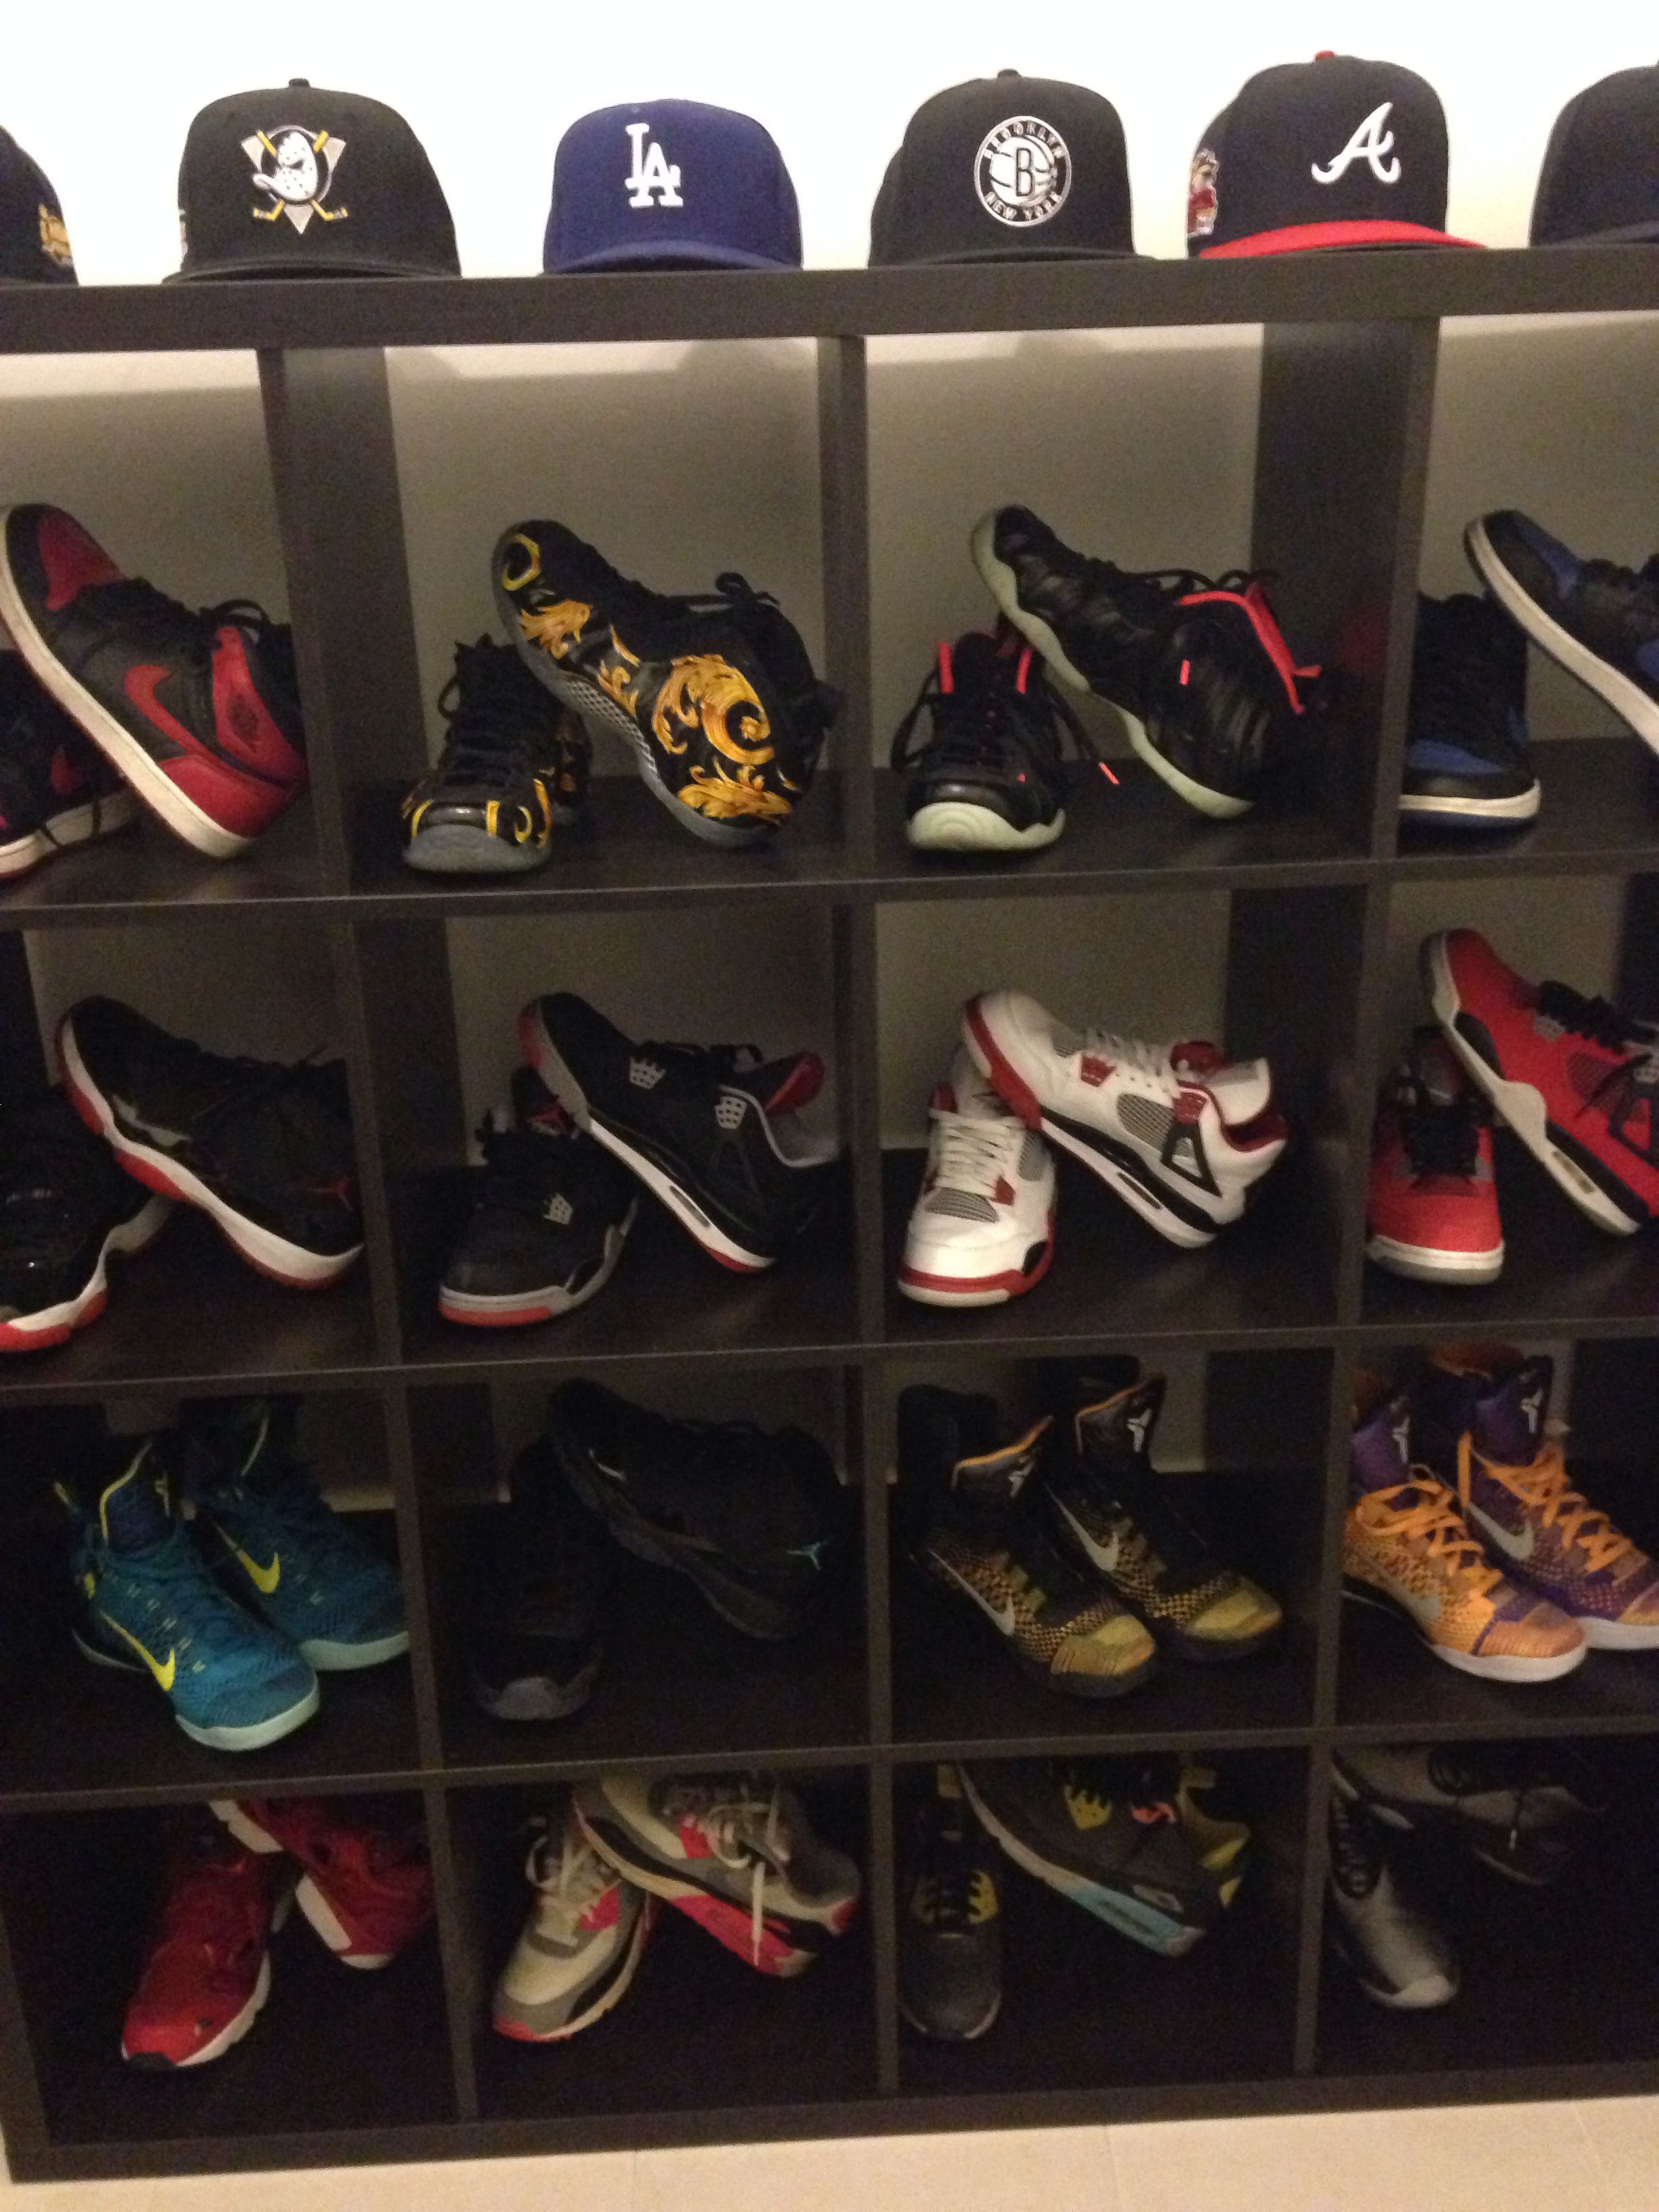 04e0f4bd7a476 Part 1 of my sneaker shelf  Achieved  )